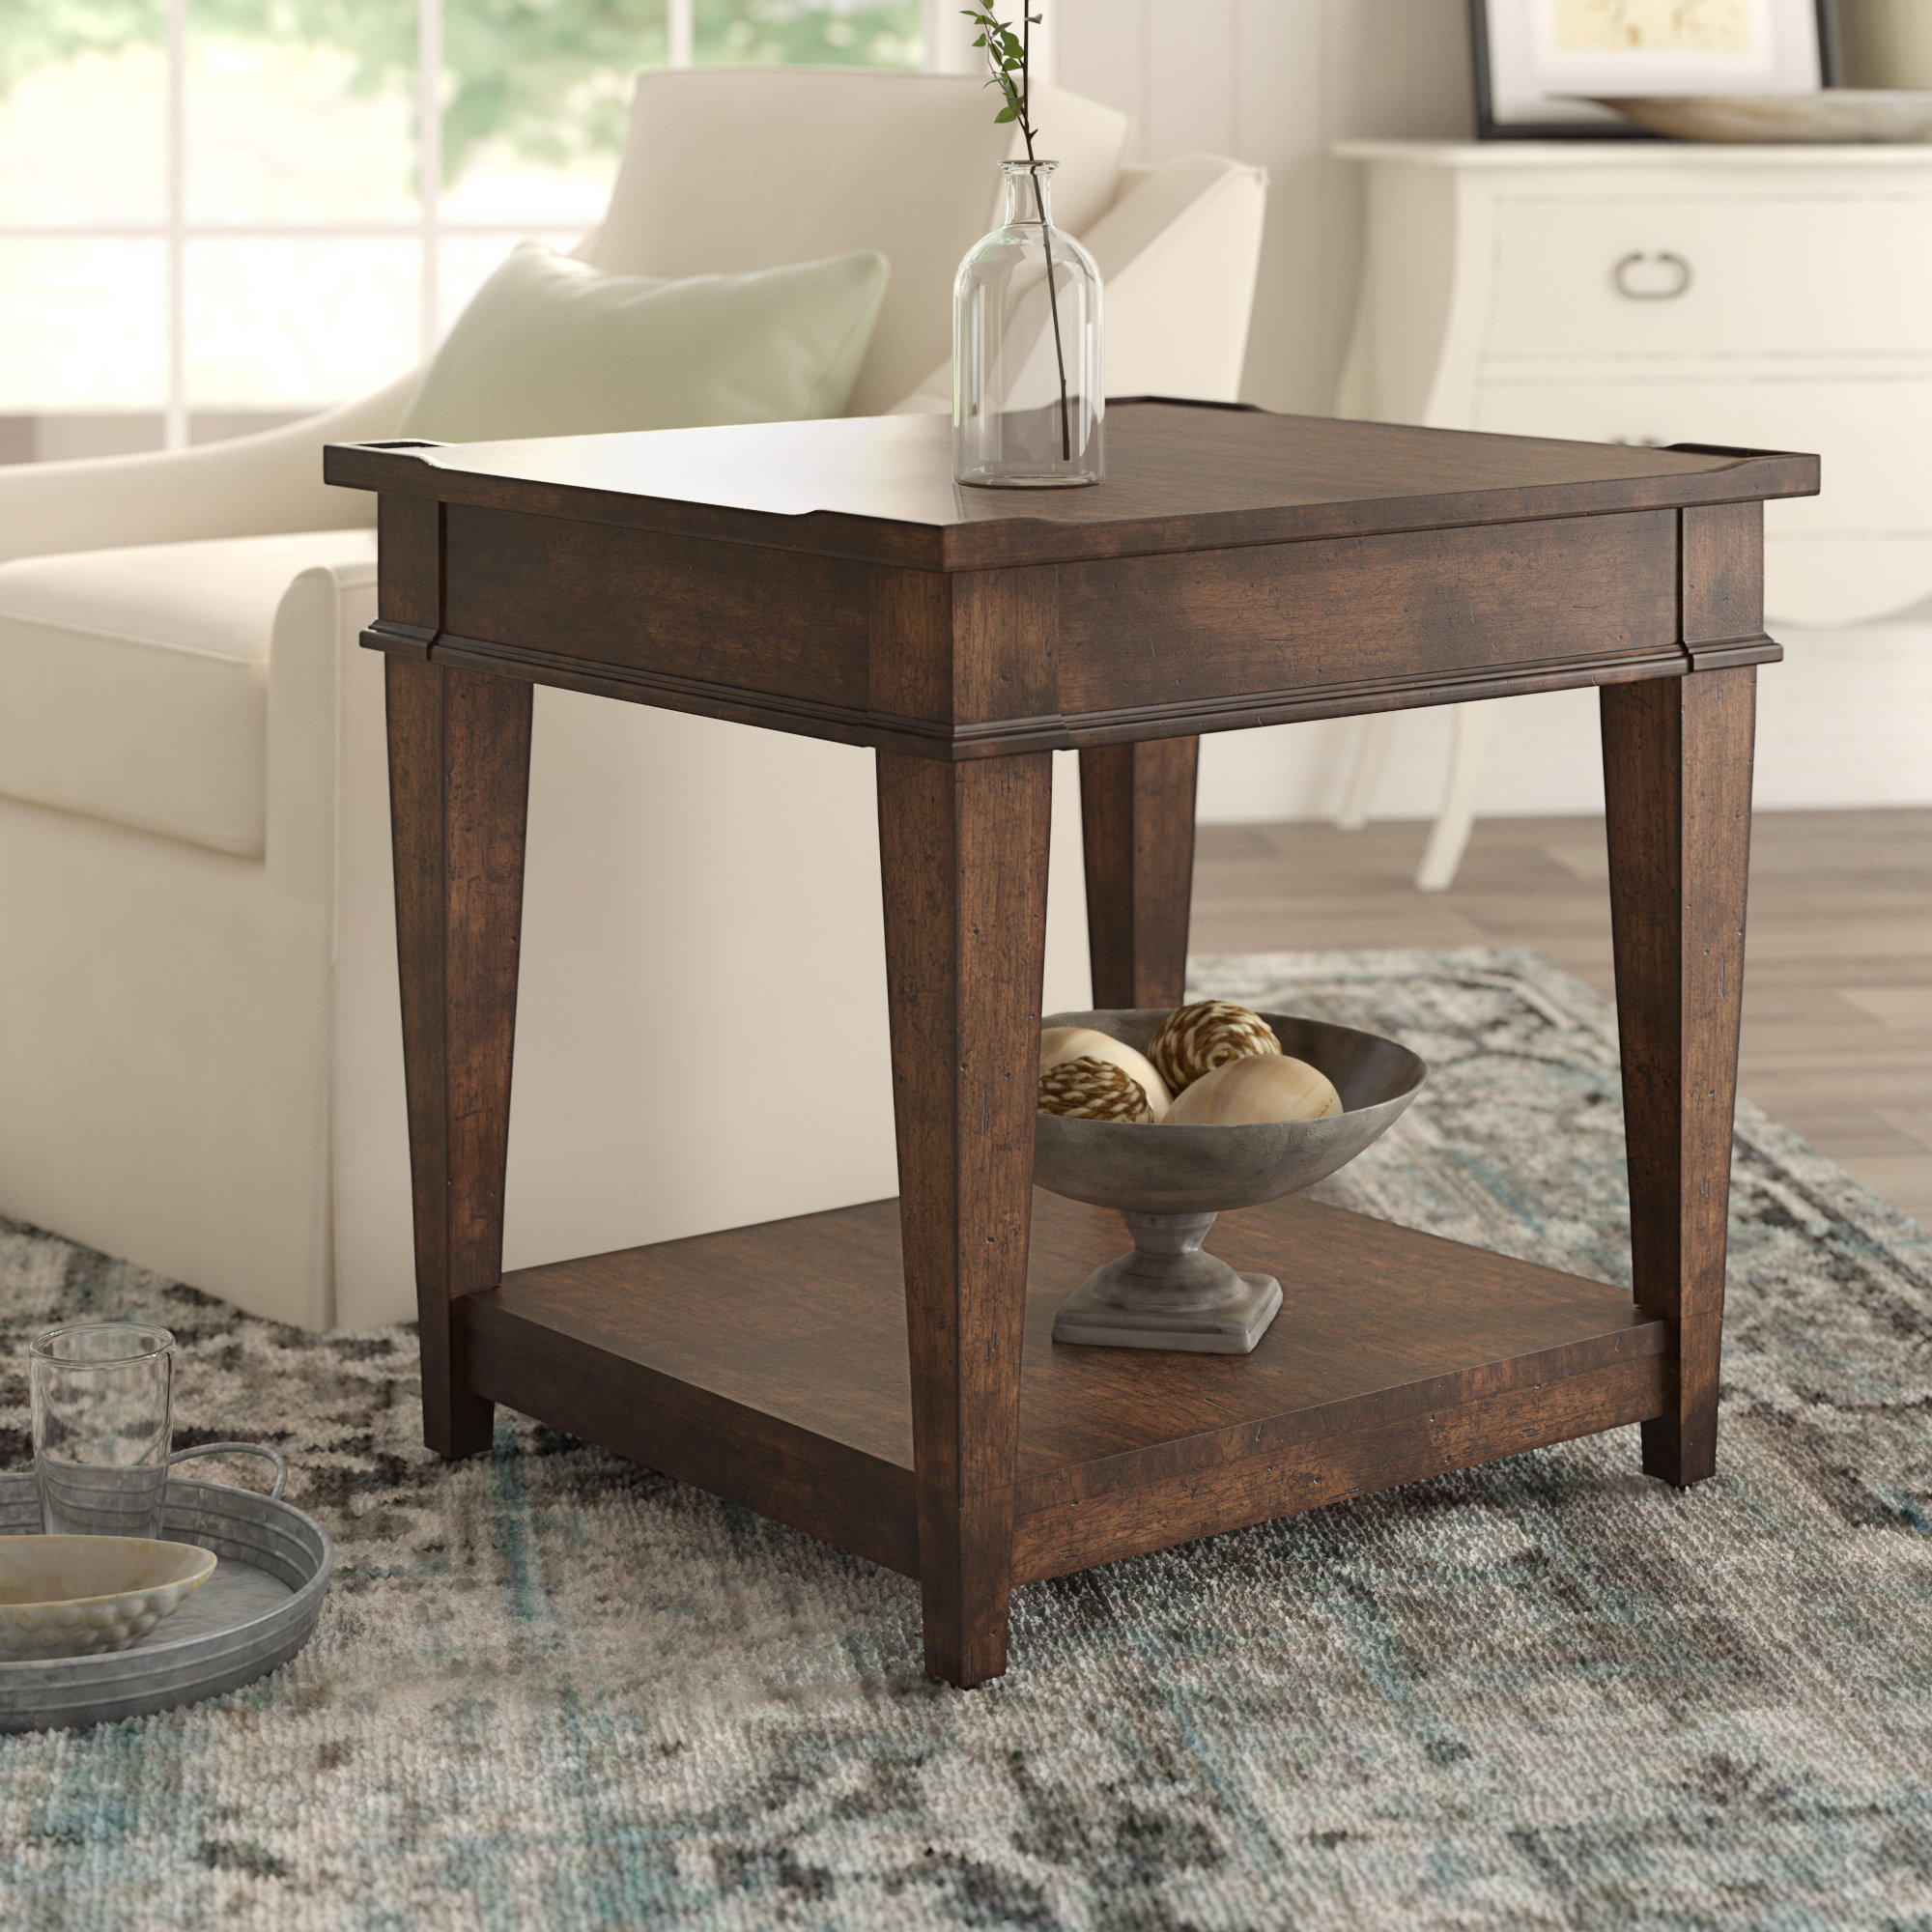 birch lane heritage wheaton side table reviews room essentials stacking accent large ginger jar lamps console chests furniture mosaic dining and chairs glass coffee tables toronto